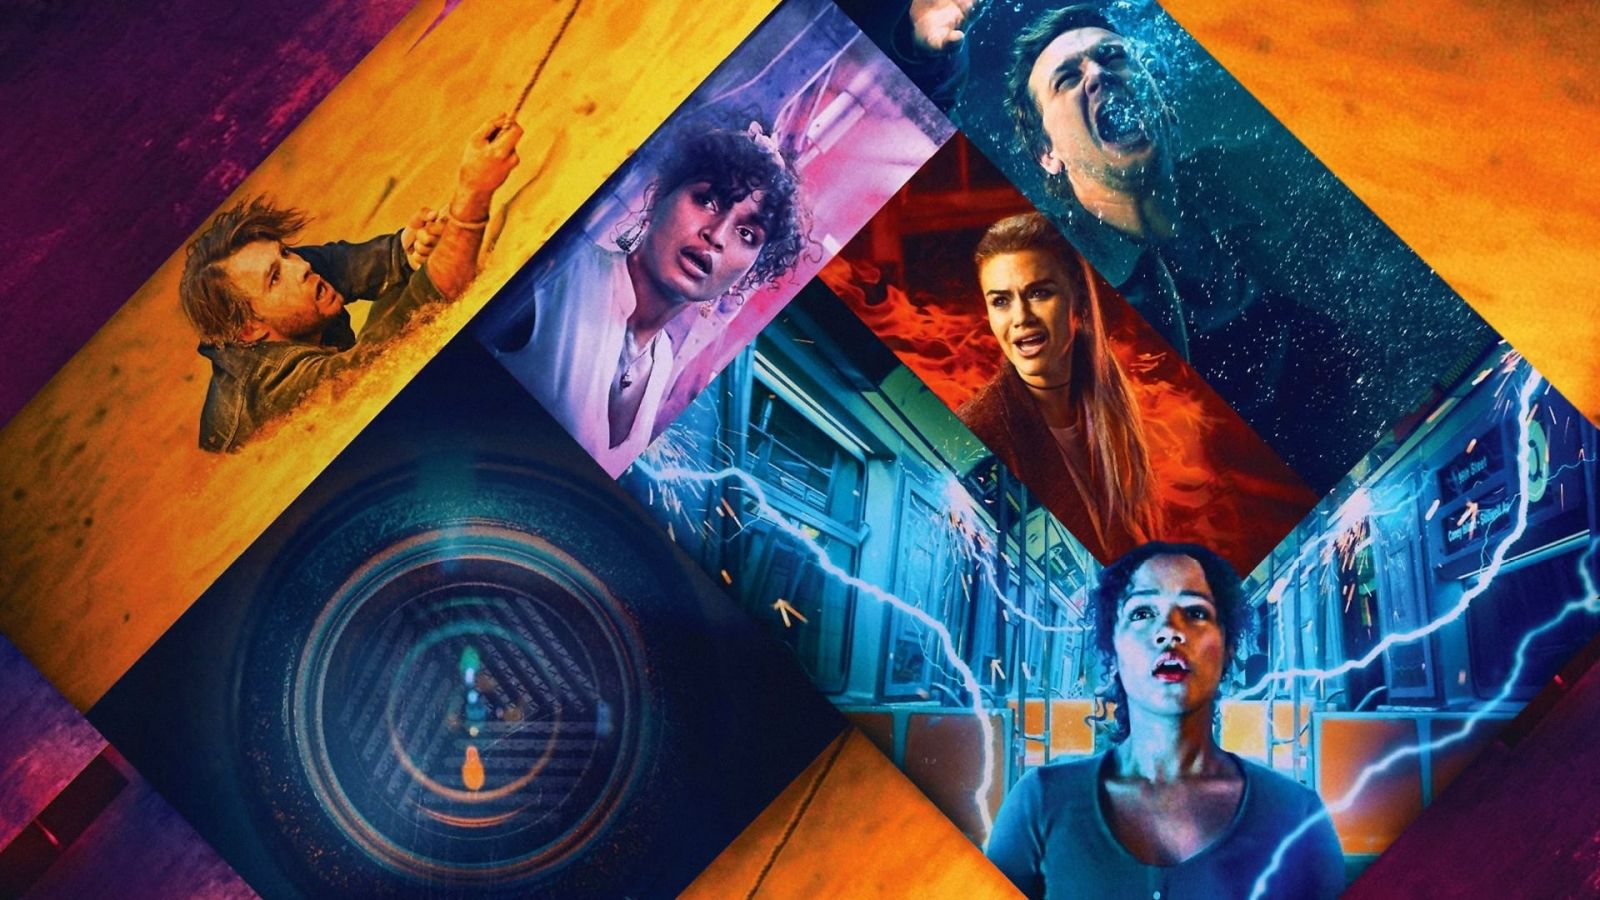 Watch Escape Room: Tournament of Champions (2021) Full Movies Full HD Free Online